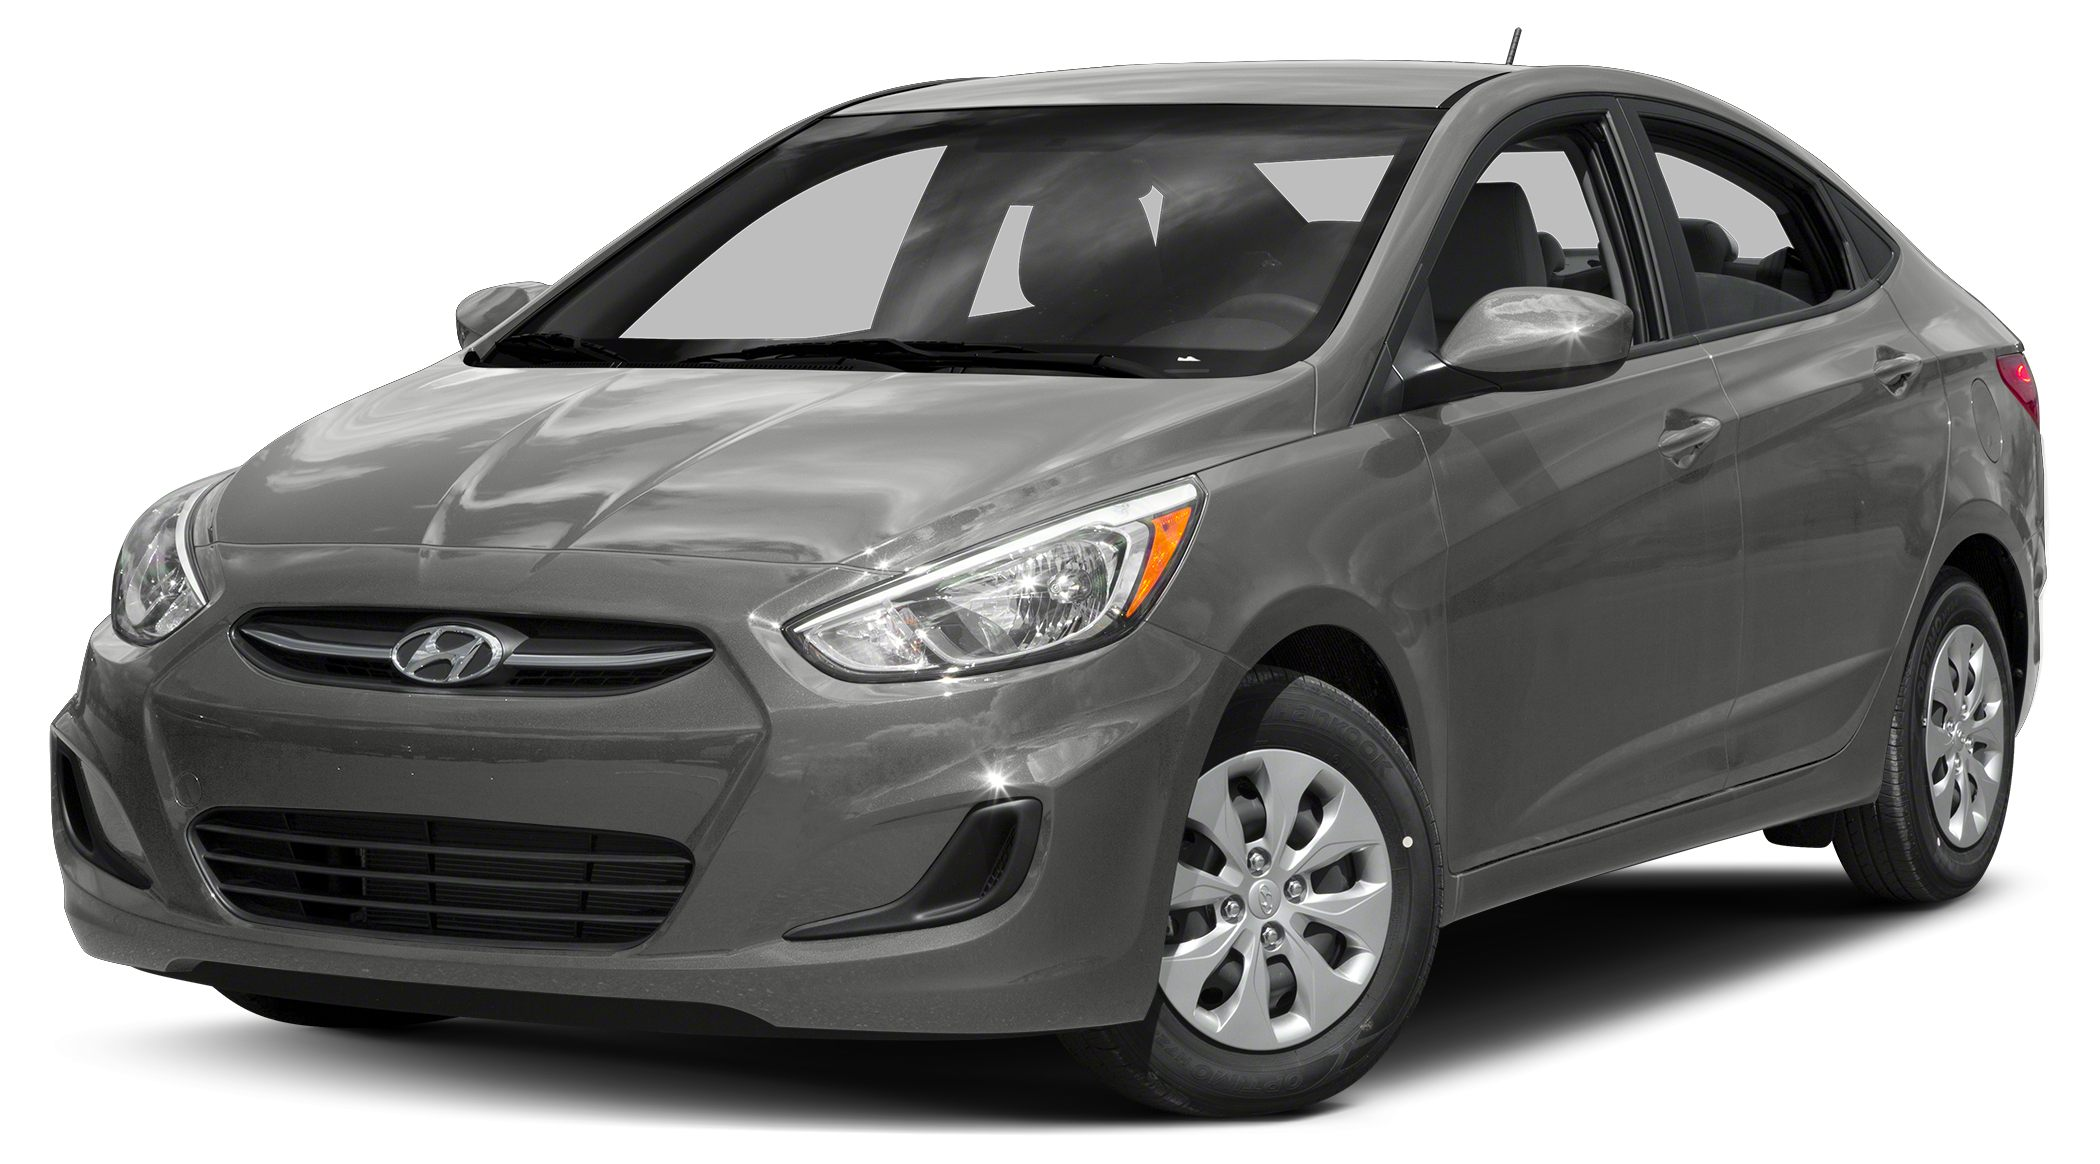 2016 Hyundai Accent SE 2016 Hyundai Accent SE in Silver and One Year Free Maintanence Gasoline R